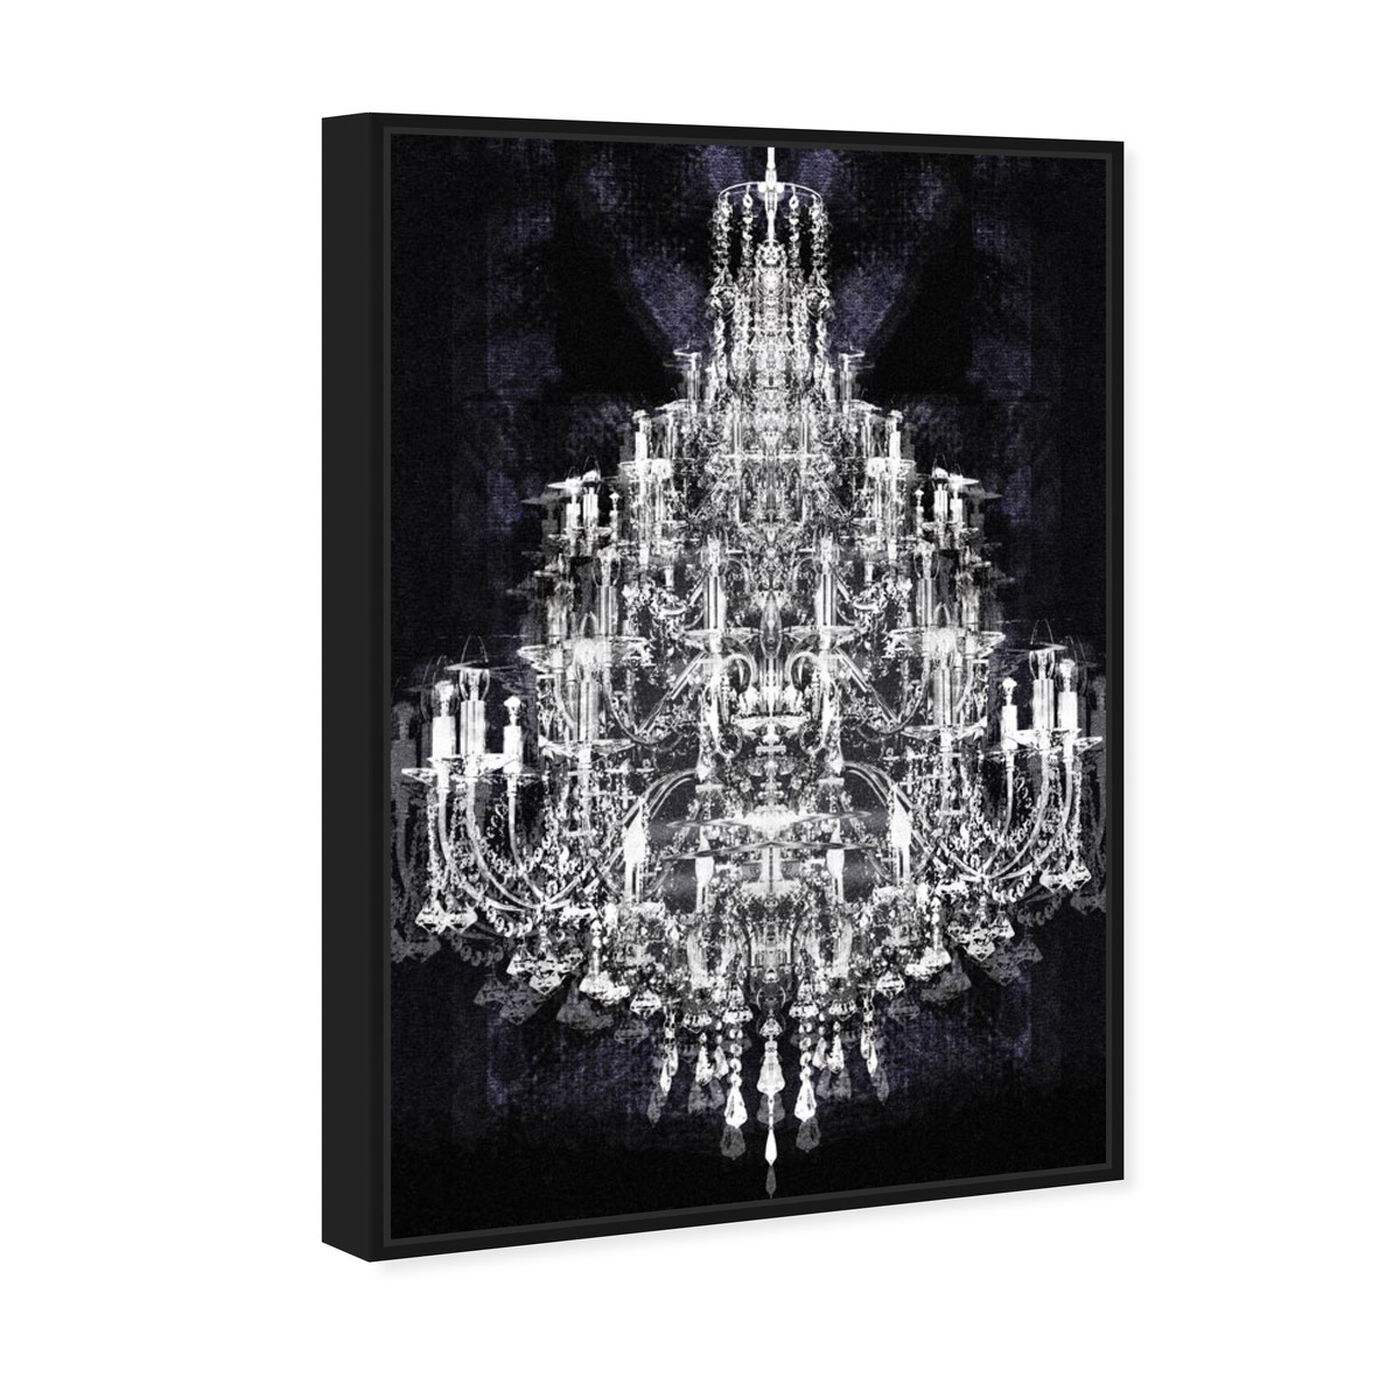 Angled view of Montecarlo Crystal featuring fashion and glam and chandeliers art.